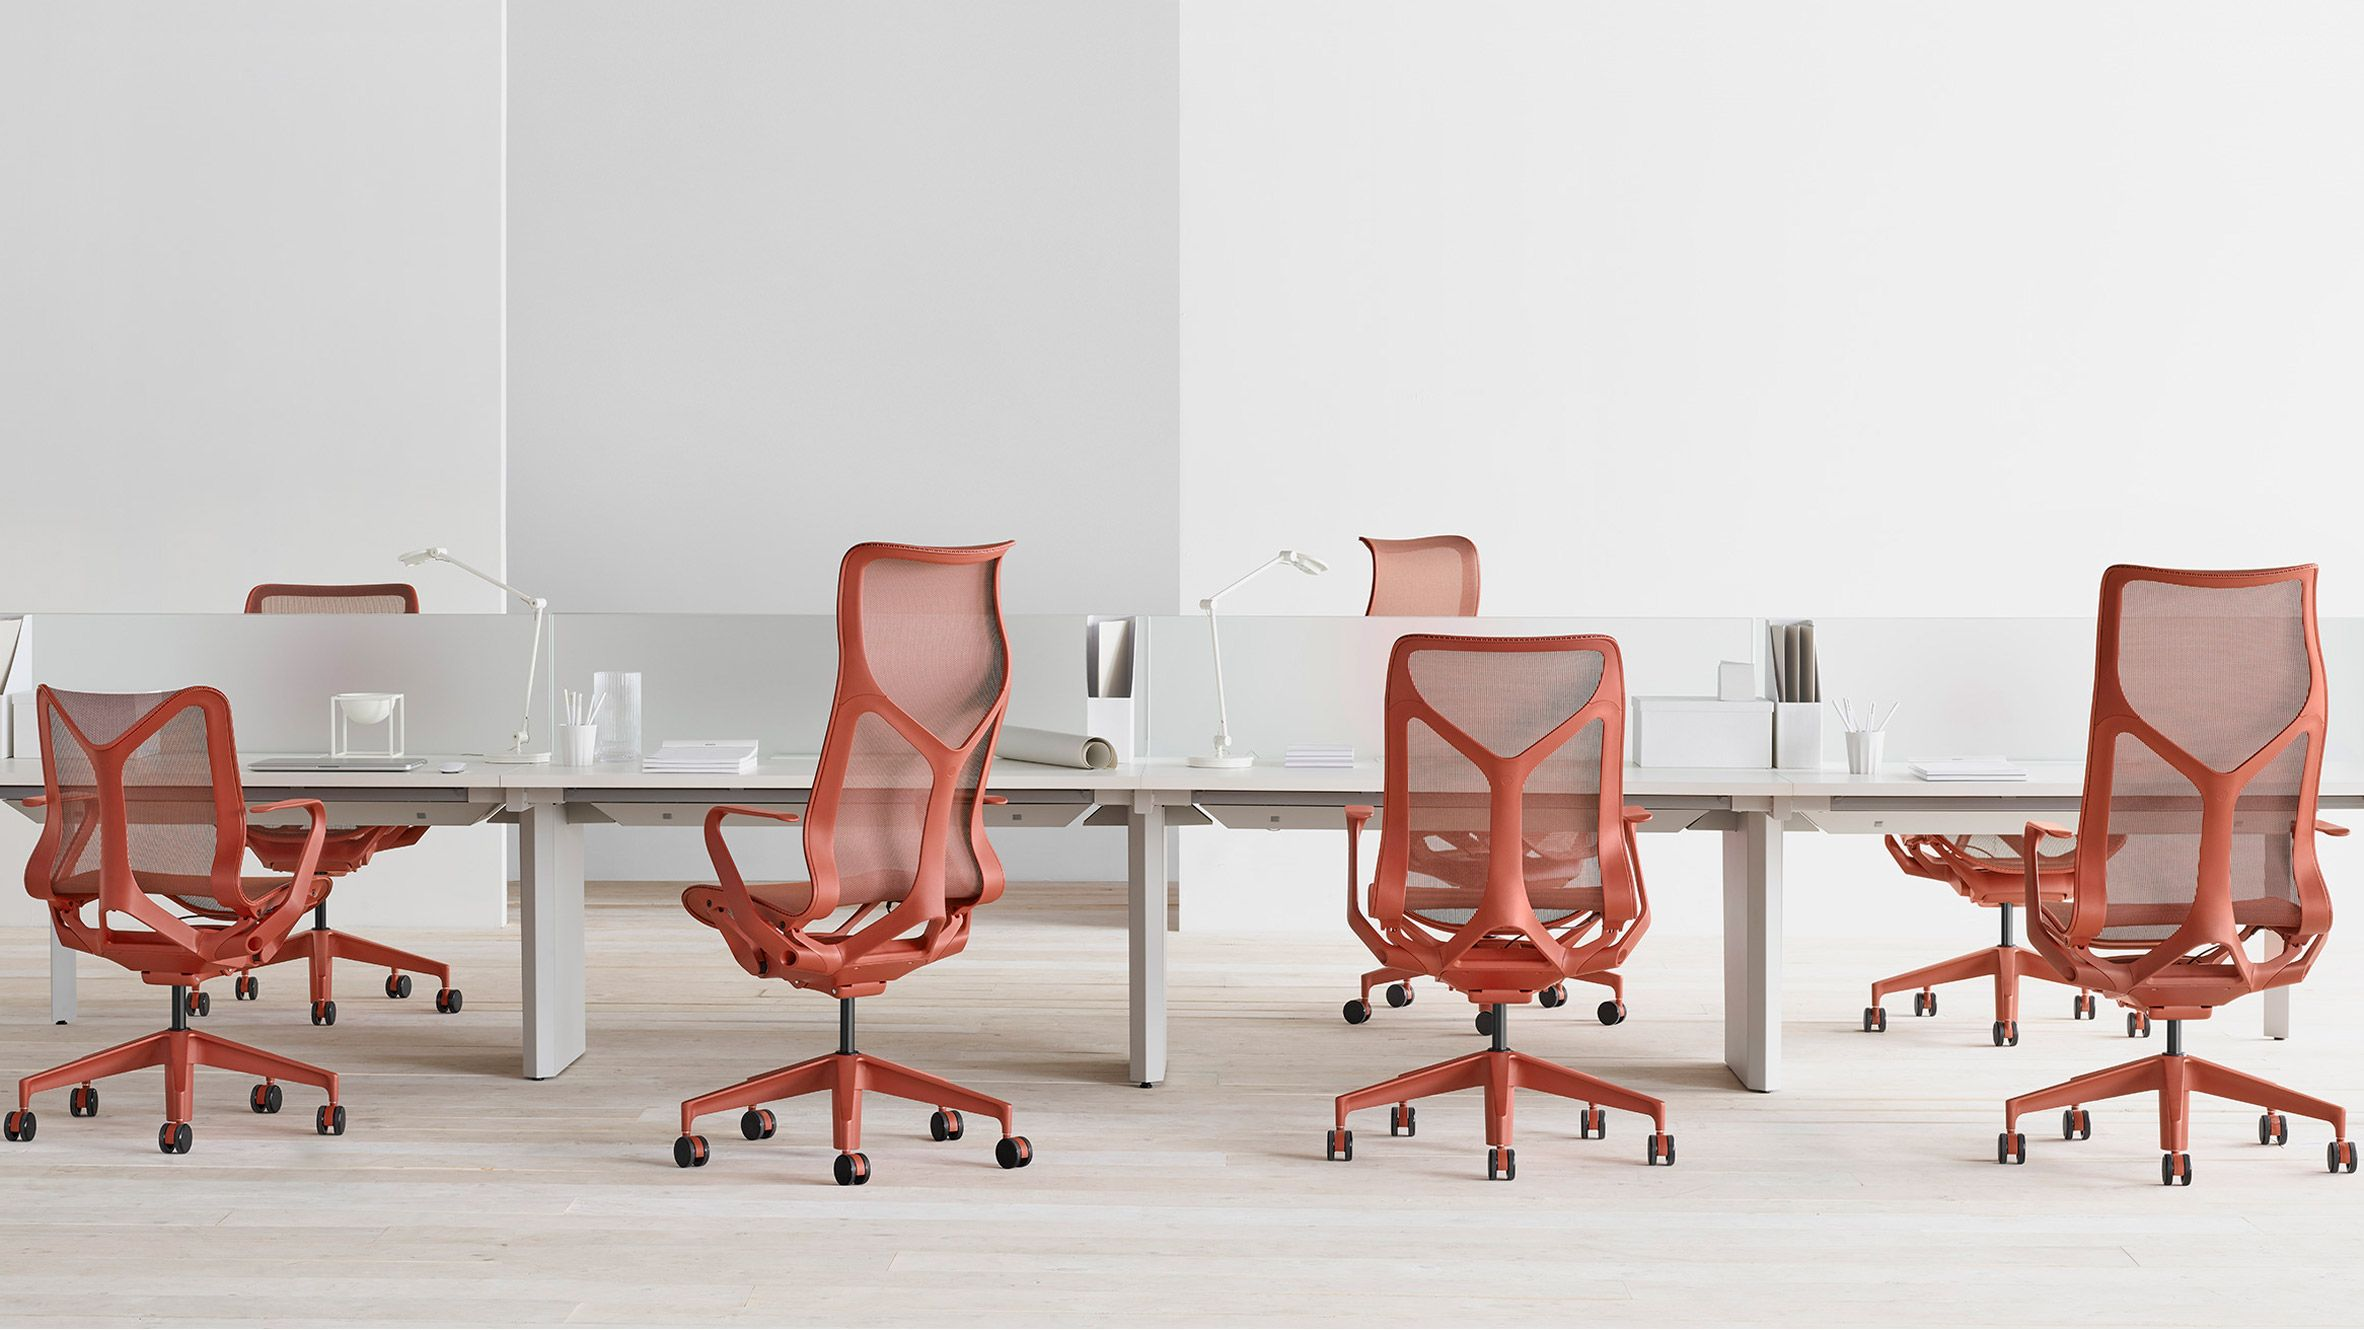 Cosm office chair by Studio 7.5 for Herman Miller in 2020